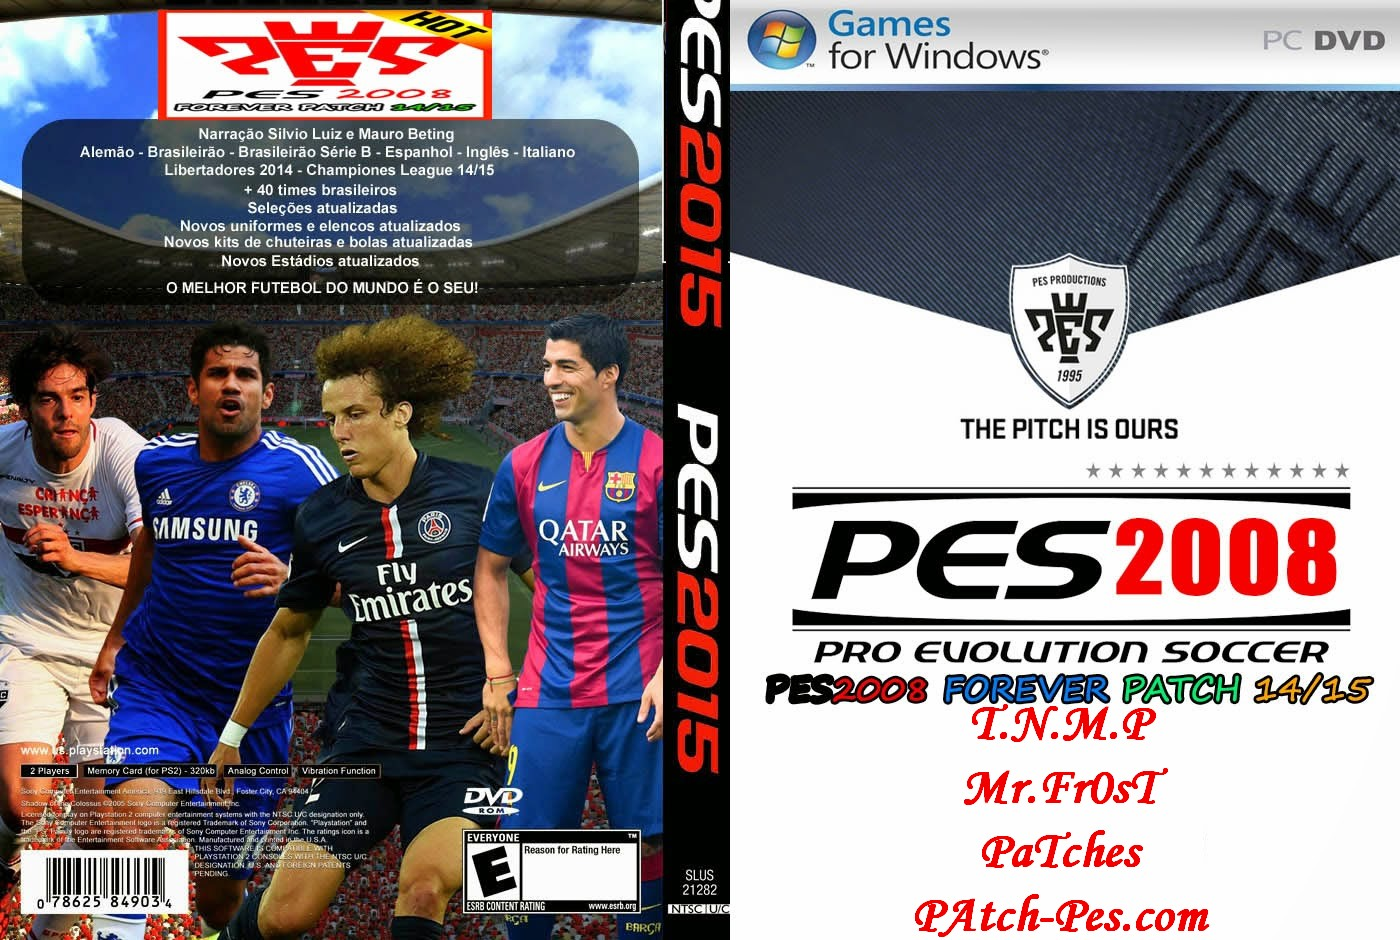 Pes psp 2008 classic patch para android khmer phone youtube.